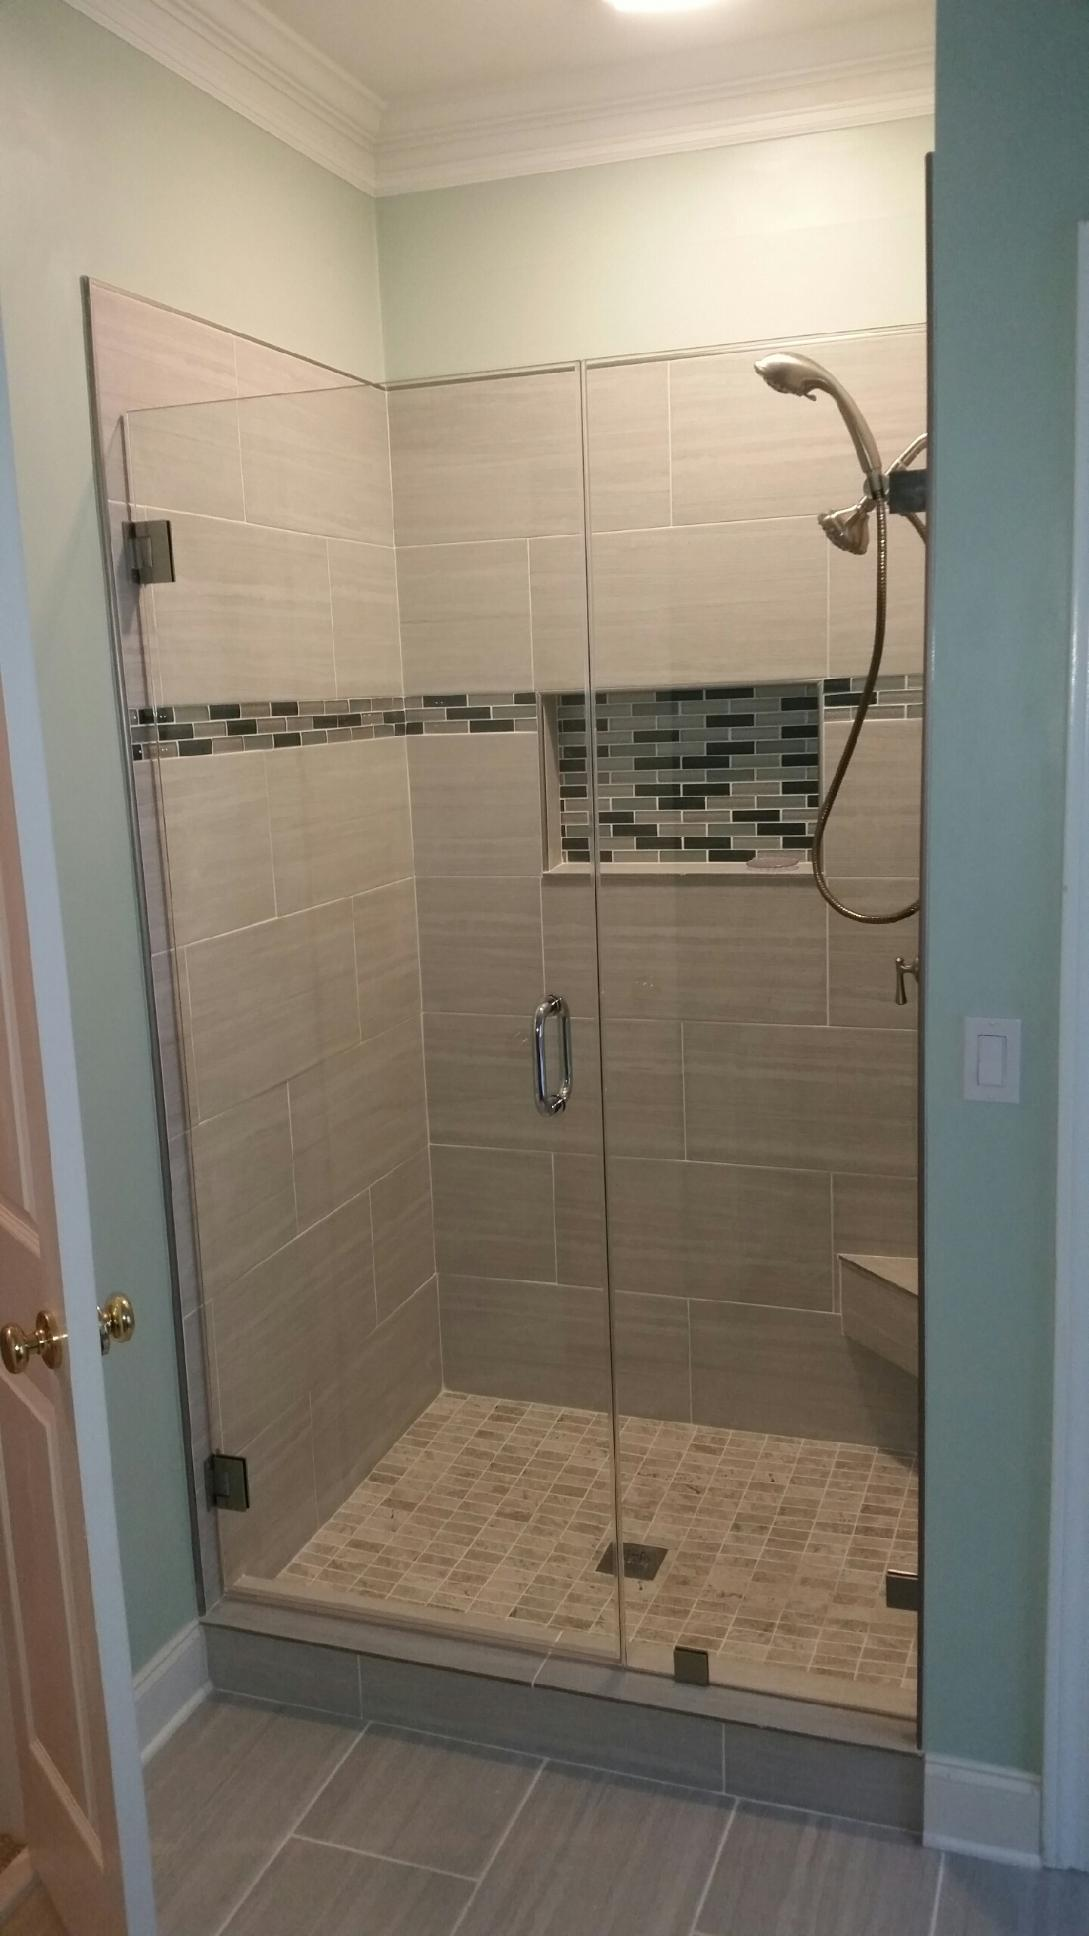 ... Georgia Frameless Glass Shower Doors For A Home Near Atlanta, Roswell  and Sandy Springs ...